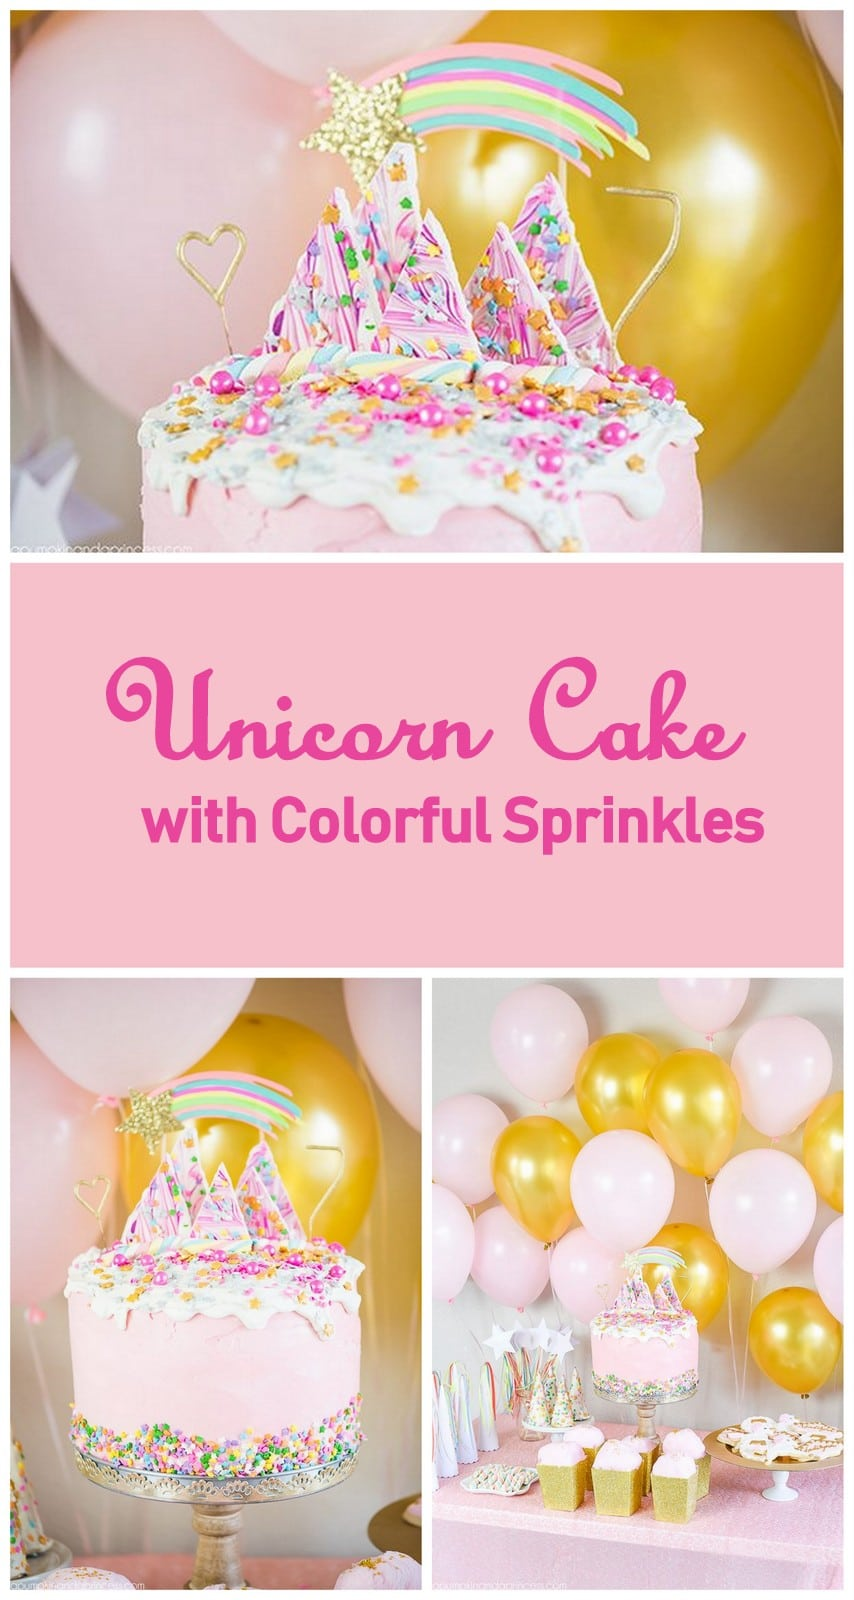 12 Unicorn Party Cake Ideas